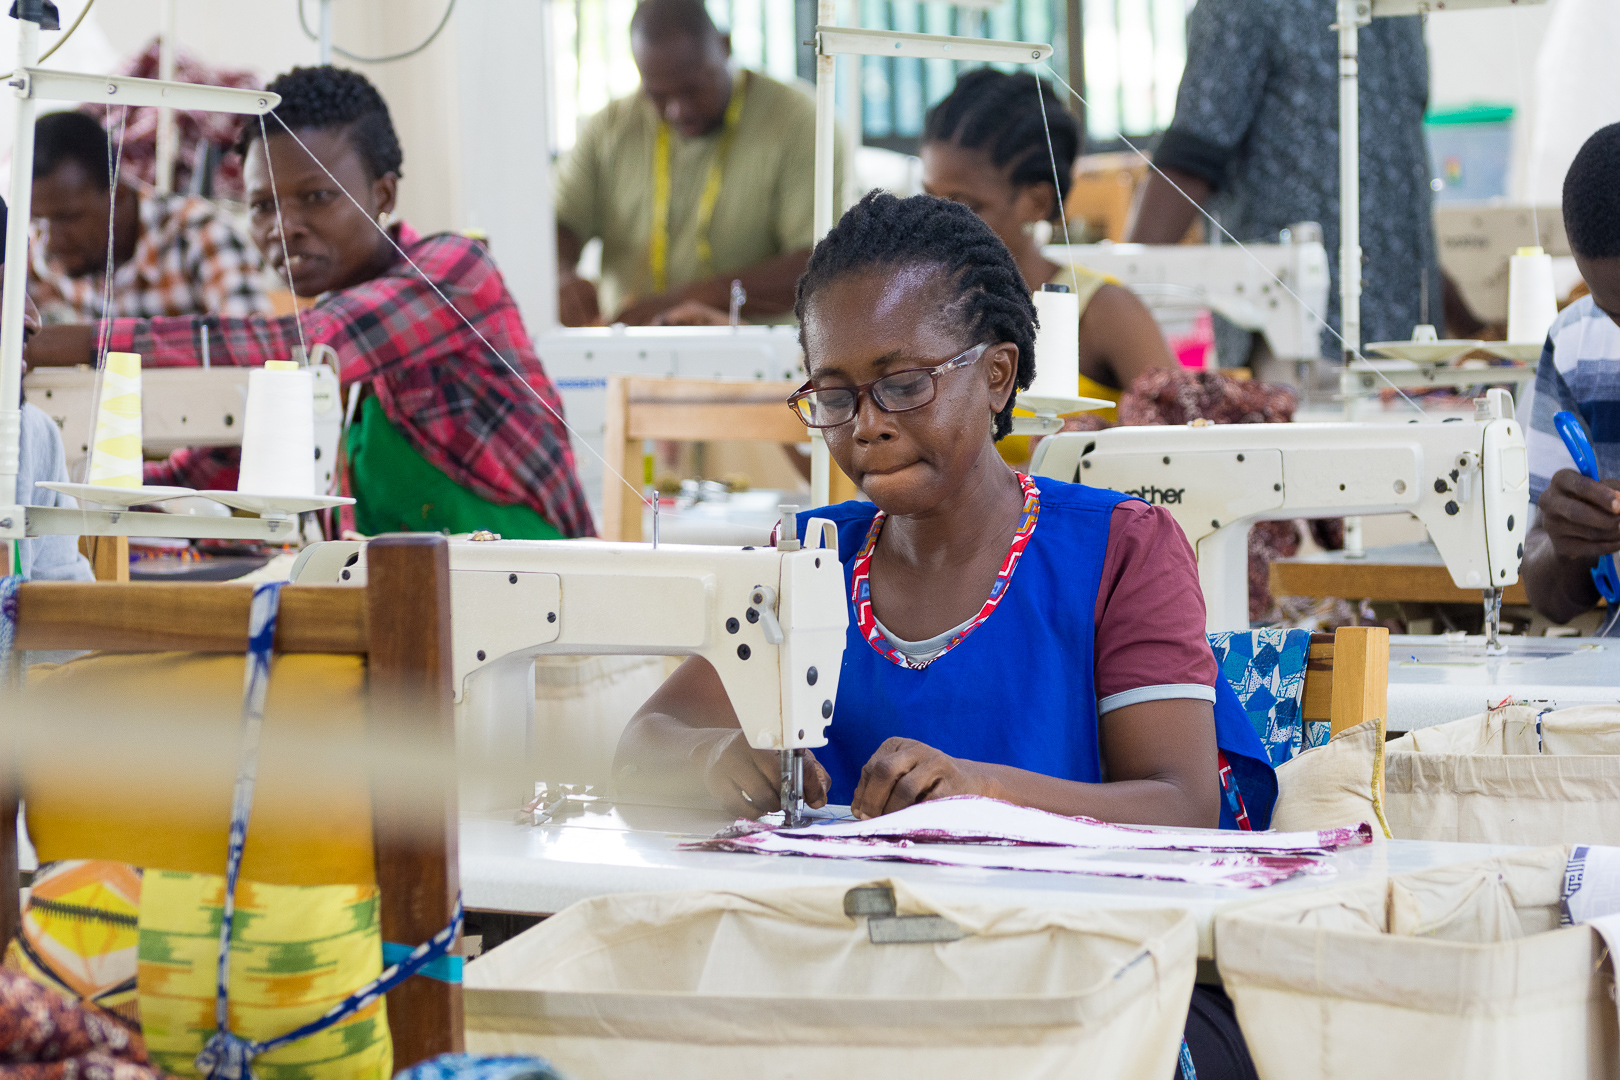 Alfie Designs manufactures clothing and accessories, and it houses a school to train women in garment production.